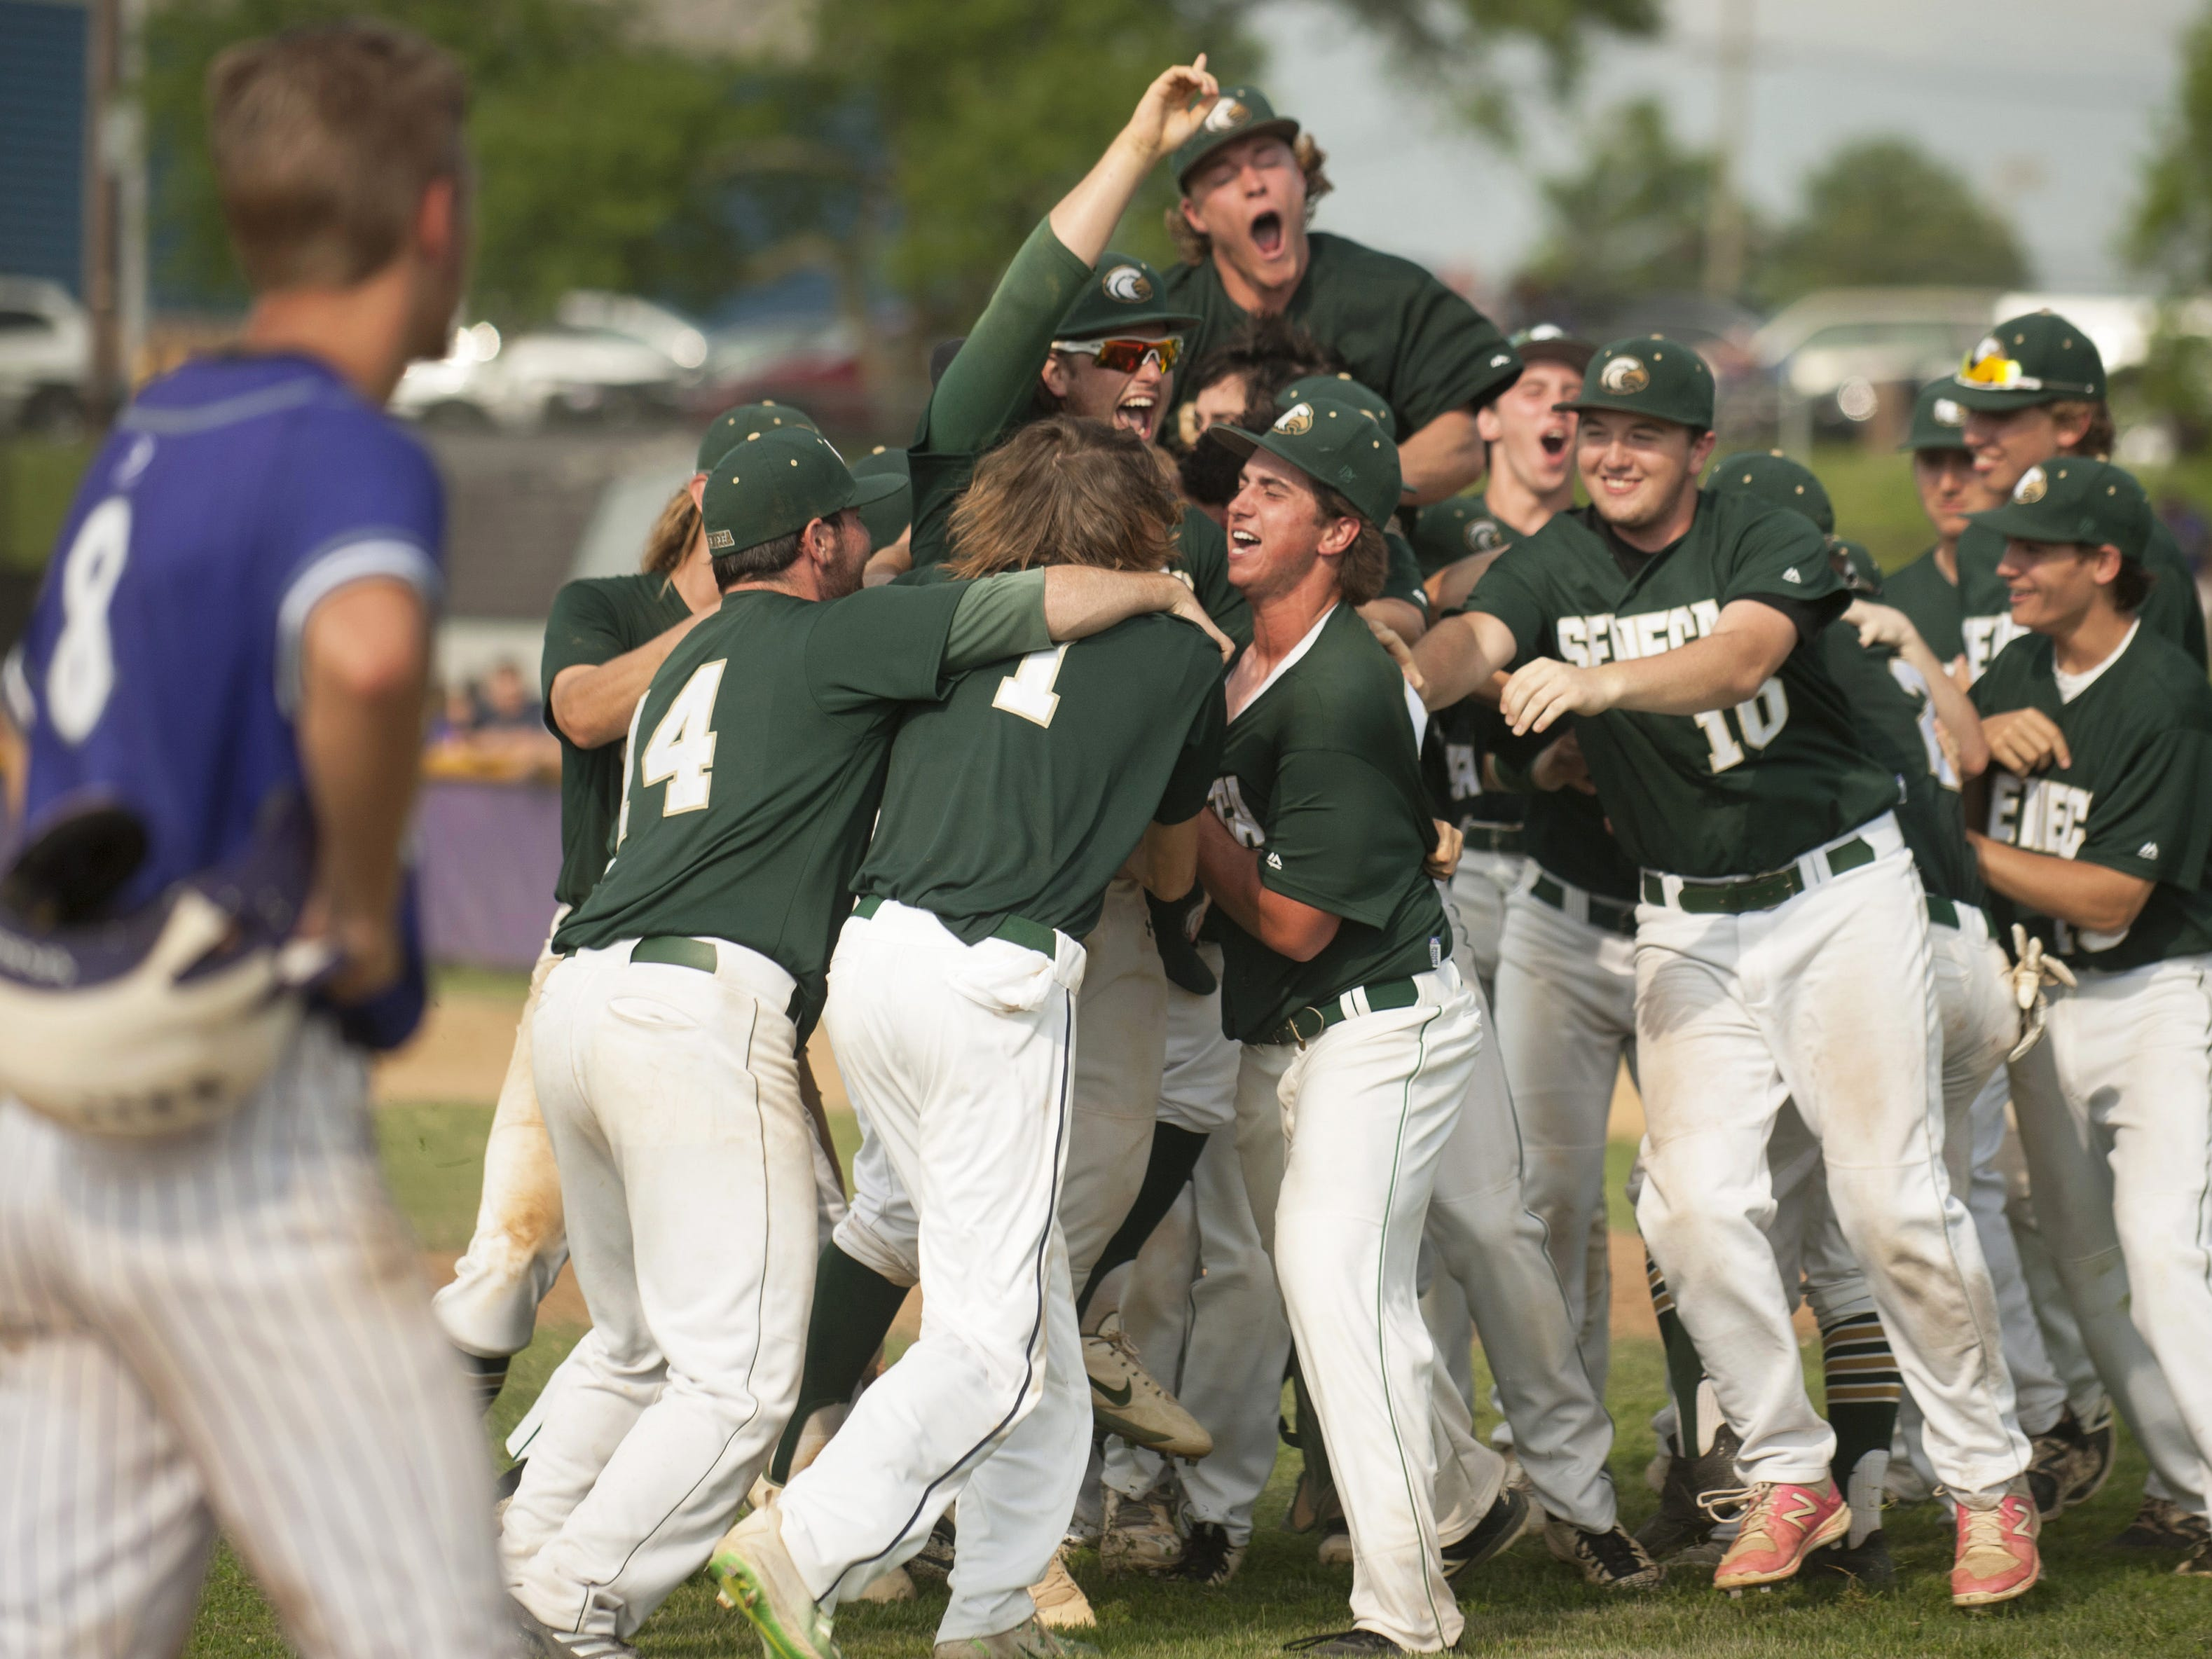 The Seneca High School baseball team celebrate after beating Cherry Hill West, 6-0, in the South Jersey Group 3 baseball final played at Cherry Hill West on Friday, June 1, 2018.